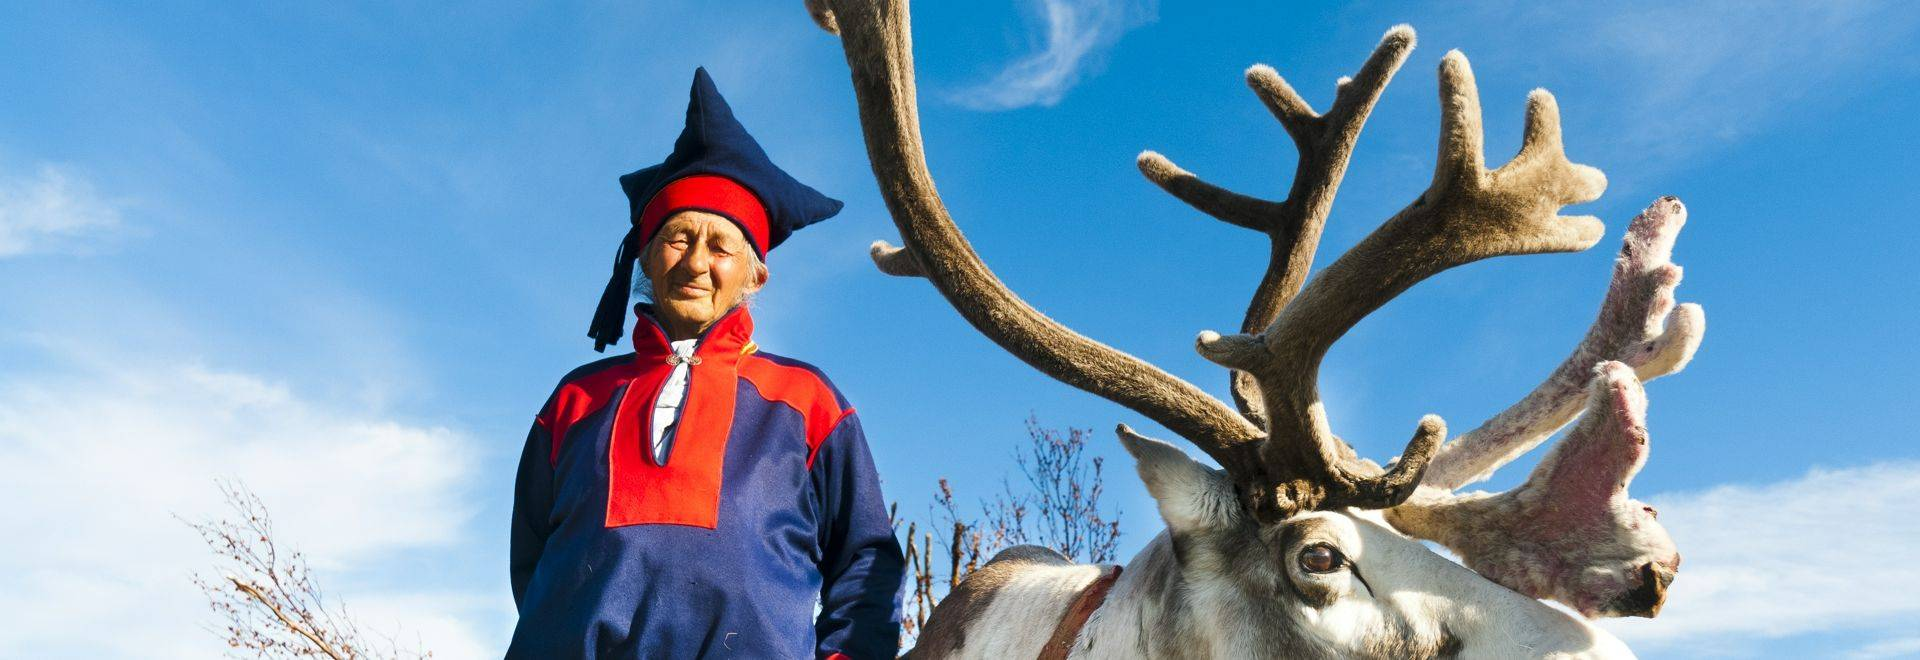 Sami-and-his-reindeer-in-North-Cape-2011-08-21.jpg-HGR-77526.JPG